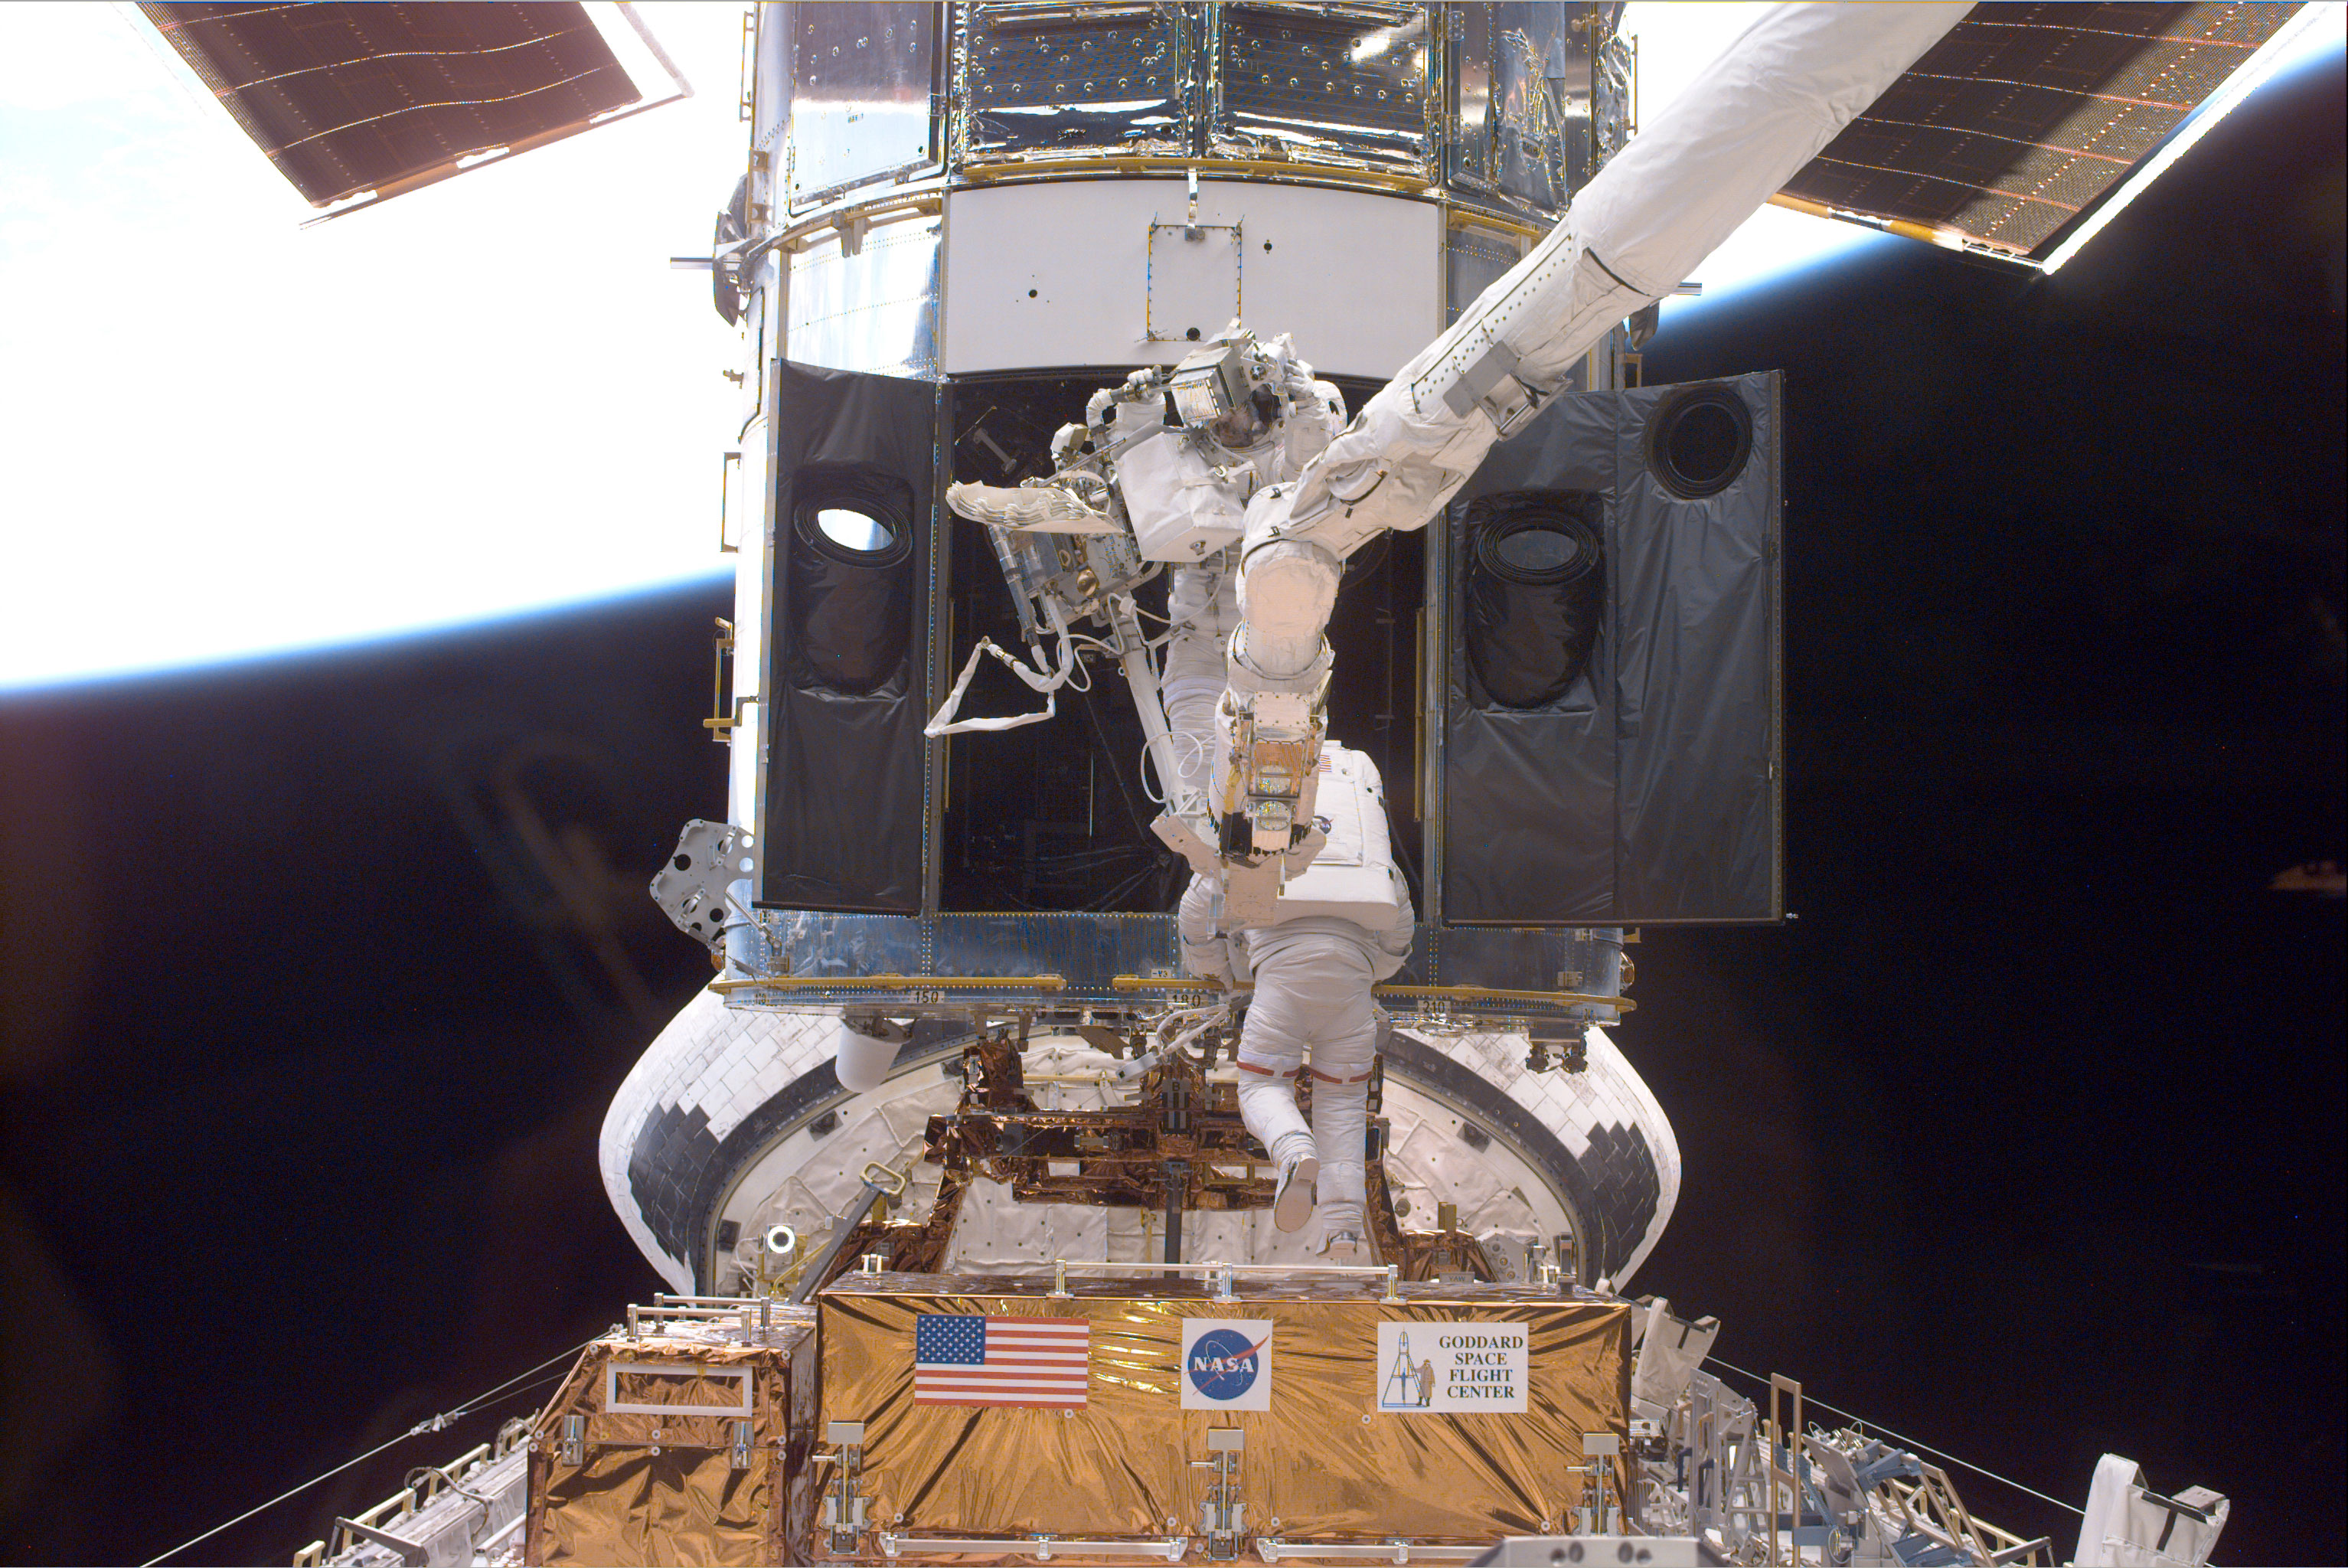 Payload Commander Steven L. Smith (bottom), and Mission Specialist John M. Grunsfeld, perform servicing tasks on the temporarily-captured Hubble Space Telescope. Grunsfeld is on a foot restraint connected to Discovery's RMS robot arm. Smith, making his second servicing visit to HST, is using handrails on the telescope. Credit: NASA